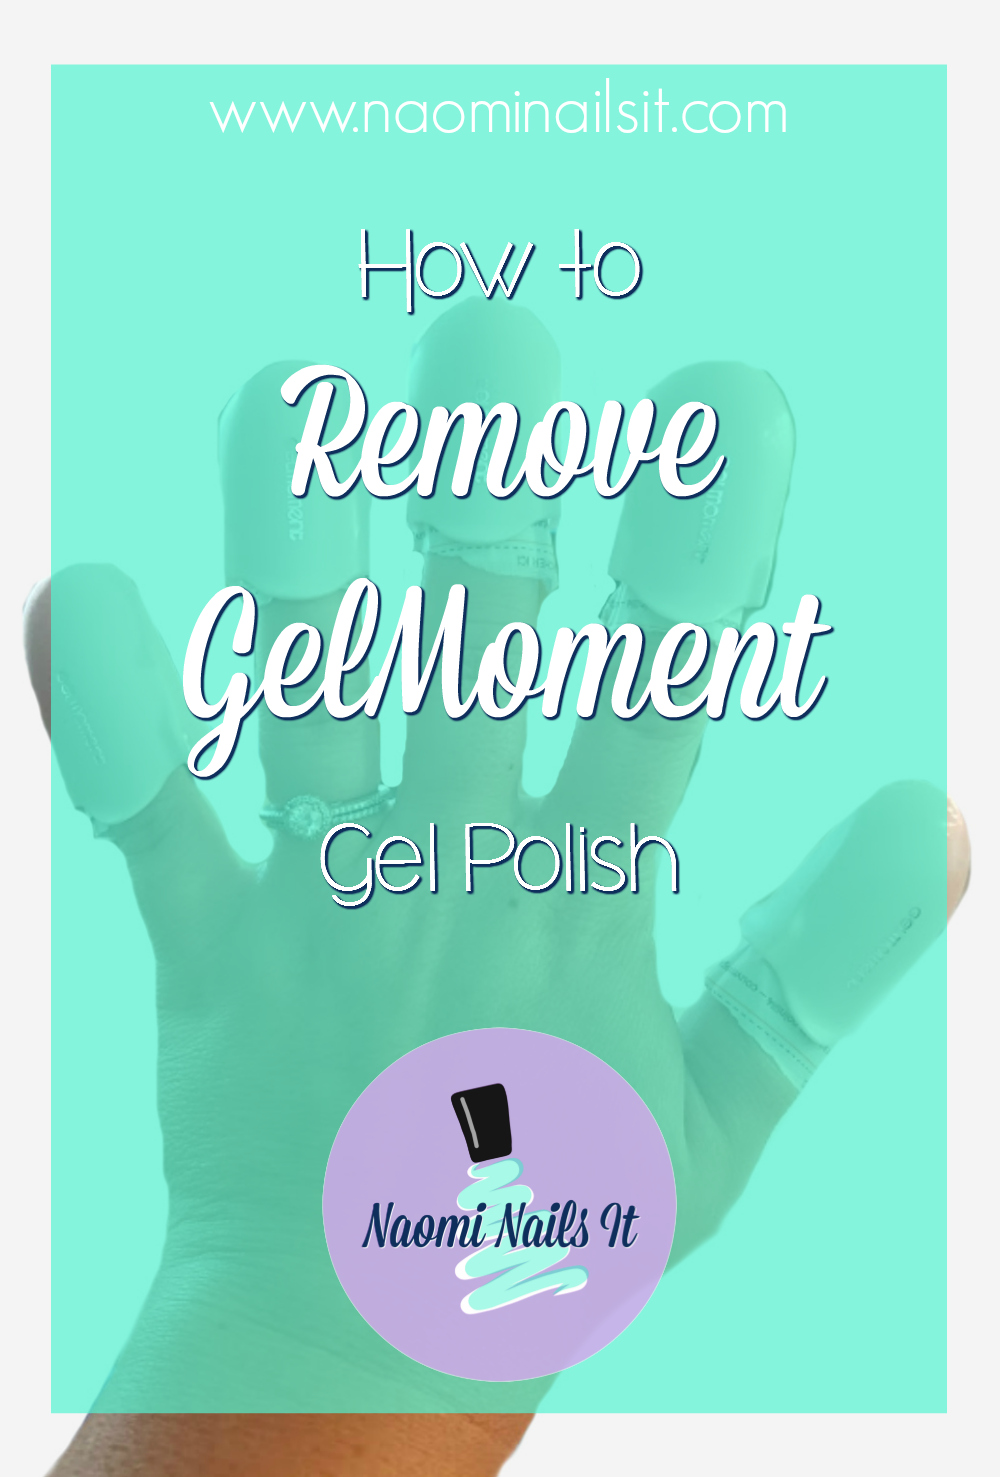 remove gelmoment, how to remove gelmoment, gelmoment removal